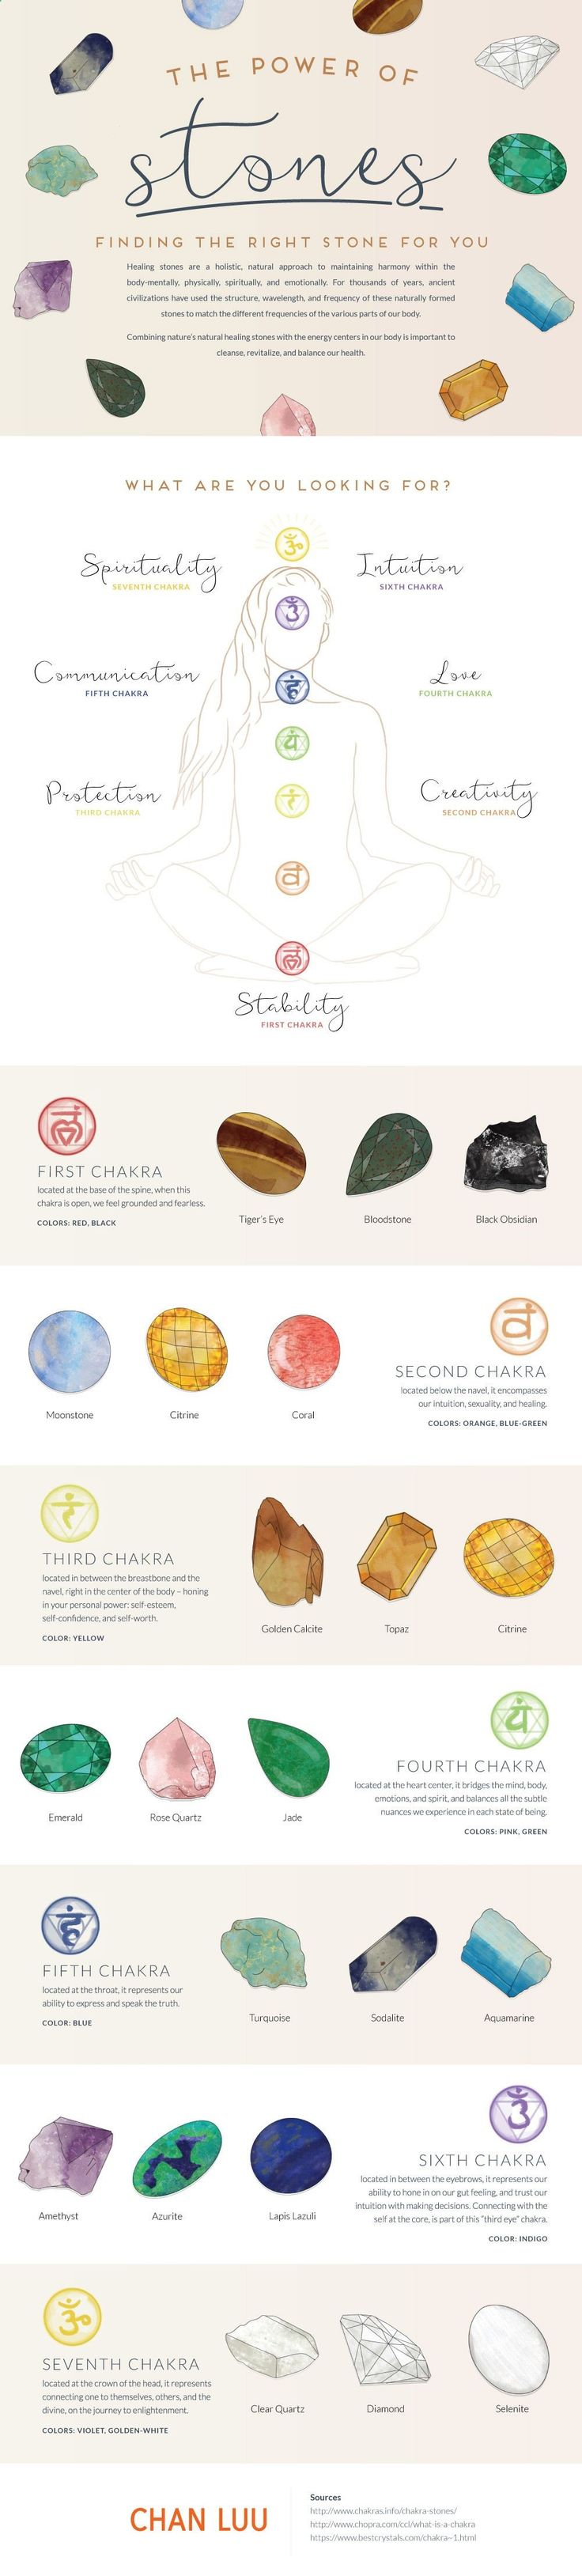 133 best reiki symbols images on pinterest reiki symbols stones are becoming more and more popular in jewelry pieces however not many people know the original meanings and supposed powers buycottarizona Images